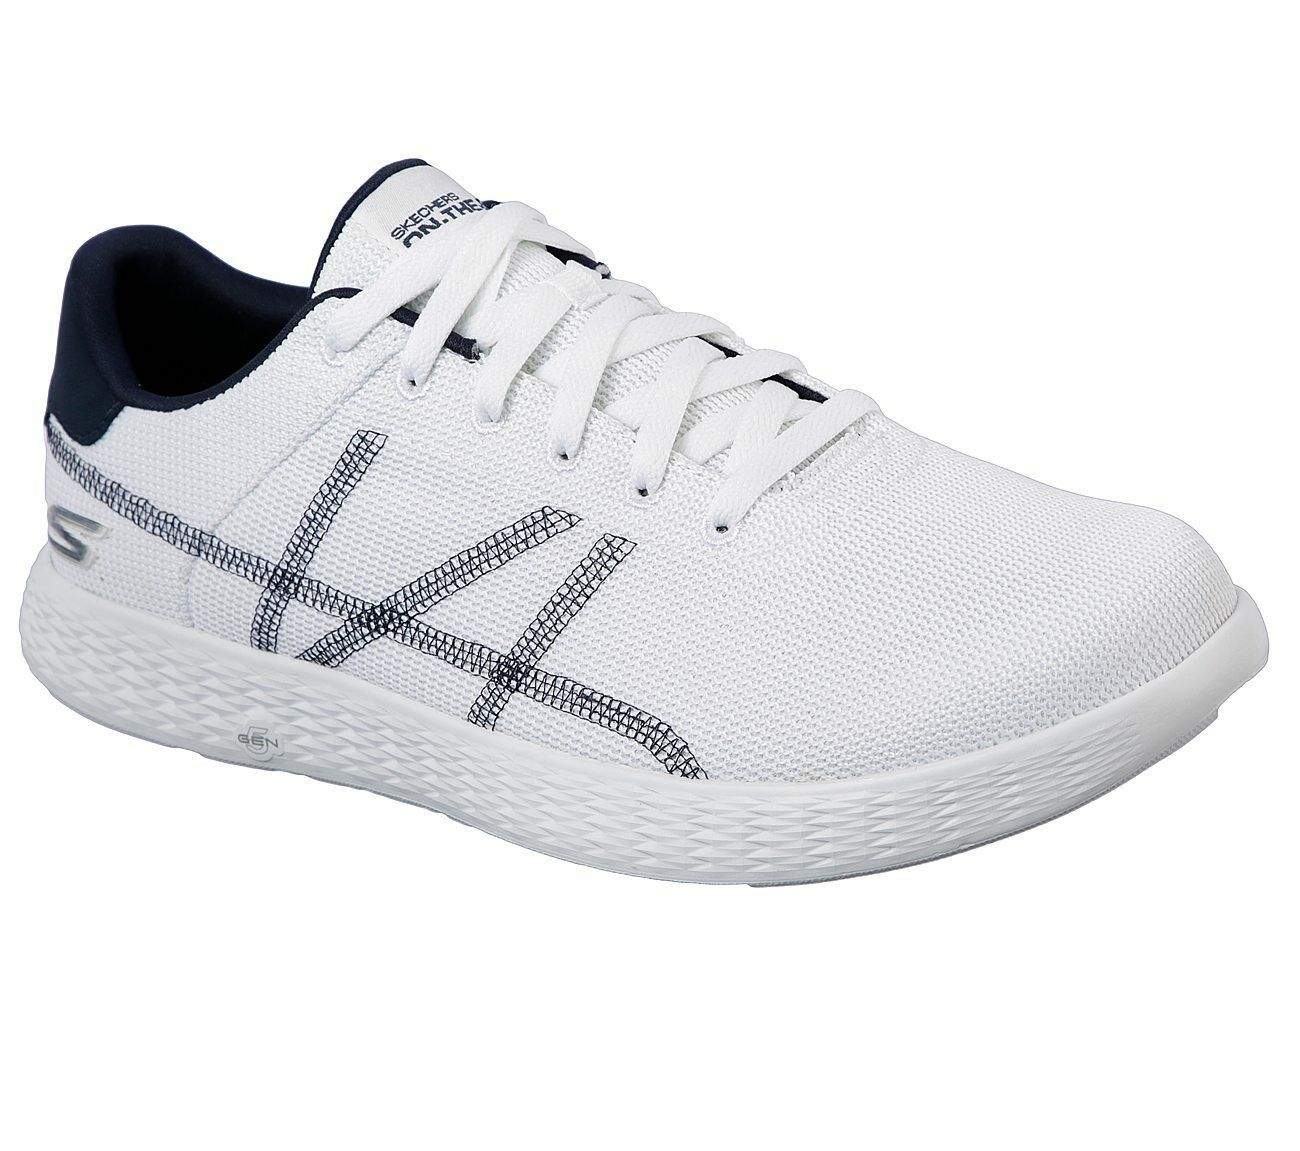 Skechers Men's Performance On The Go Glide Aces White/Navy 53777/WNV The most popular shoes for men and women